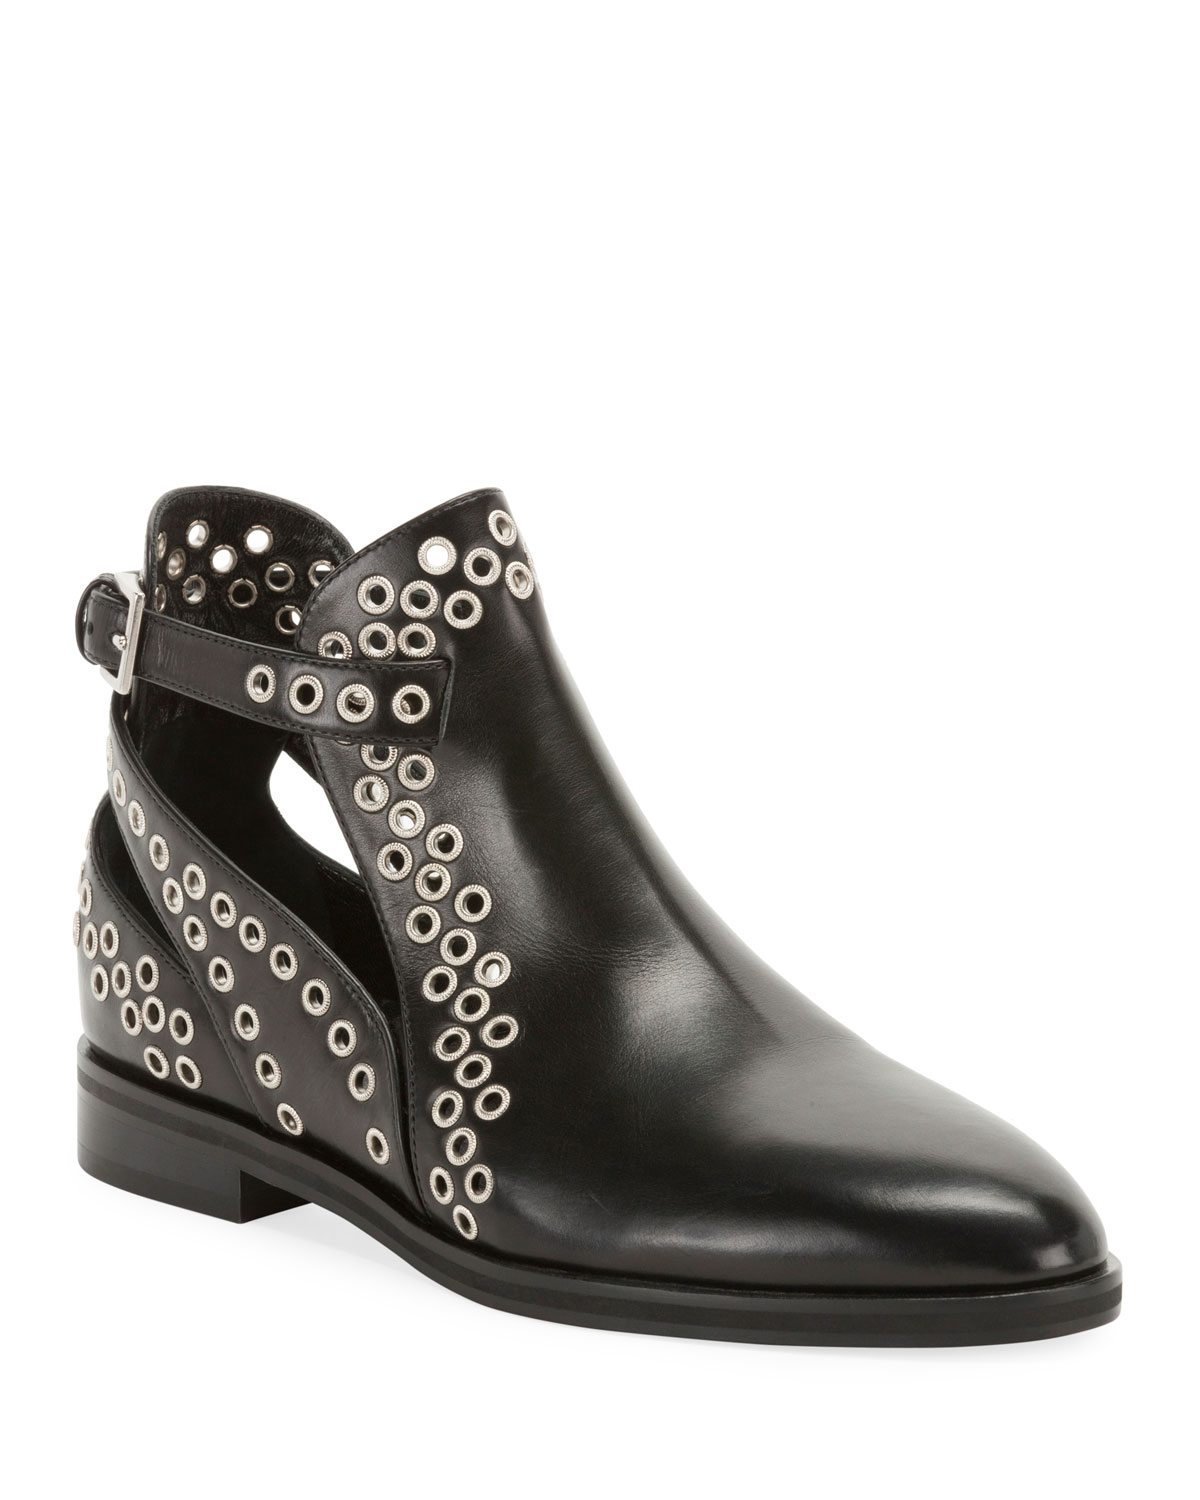 ALAÏA Leather Booties With Grommets in Black